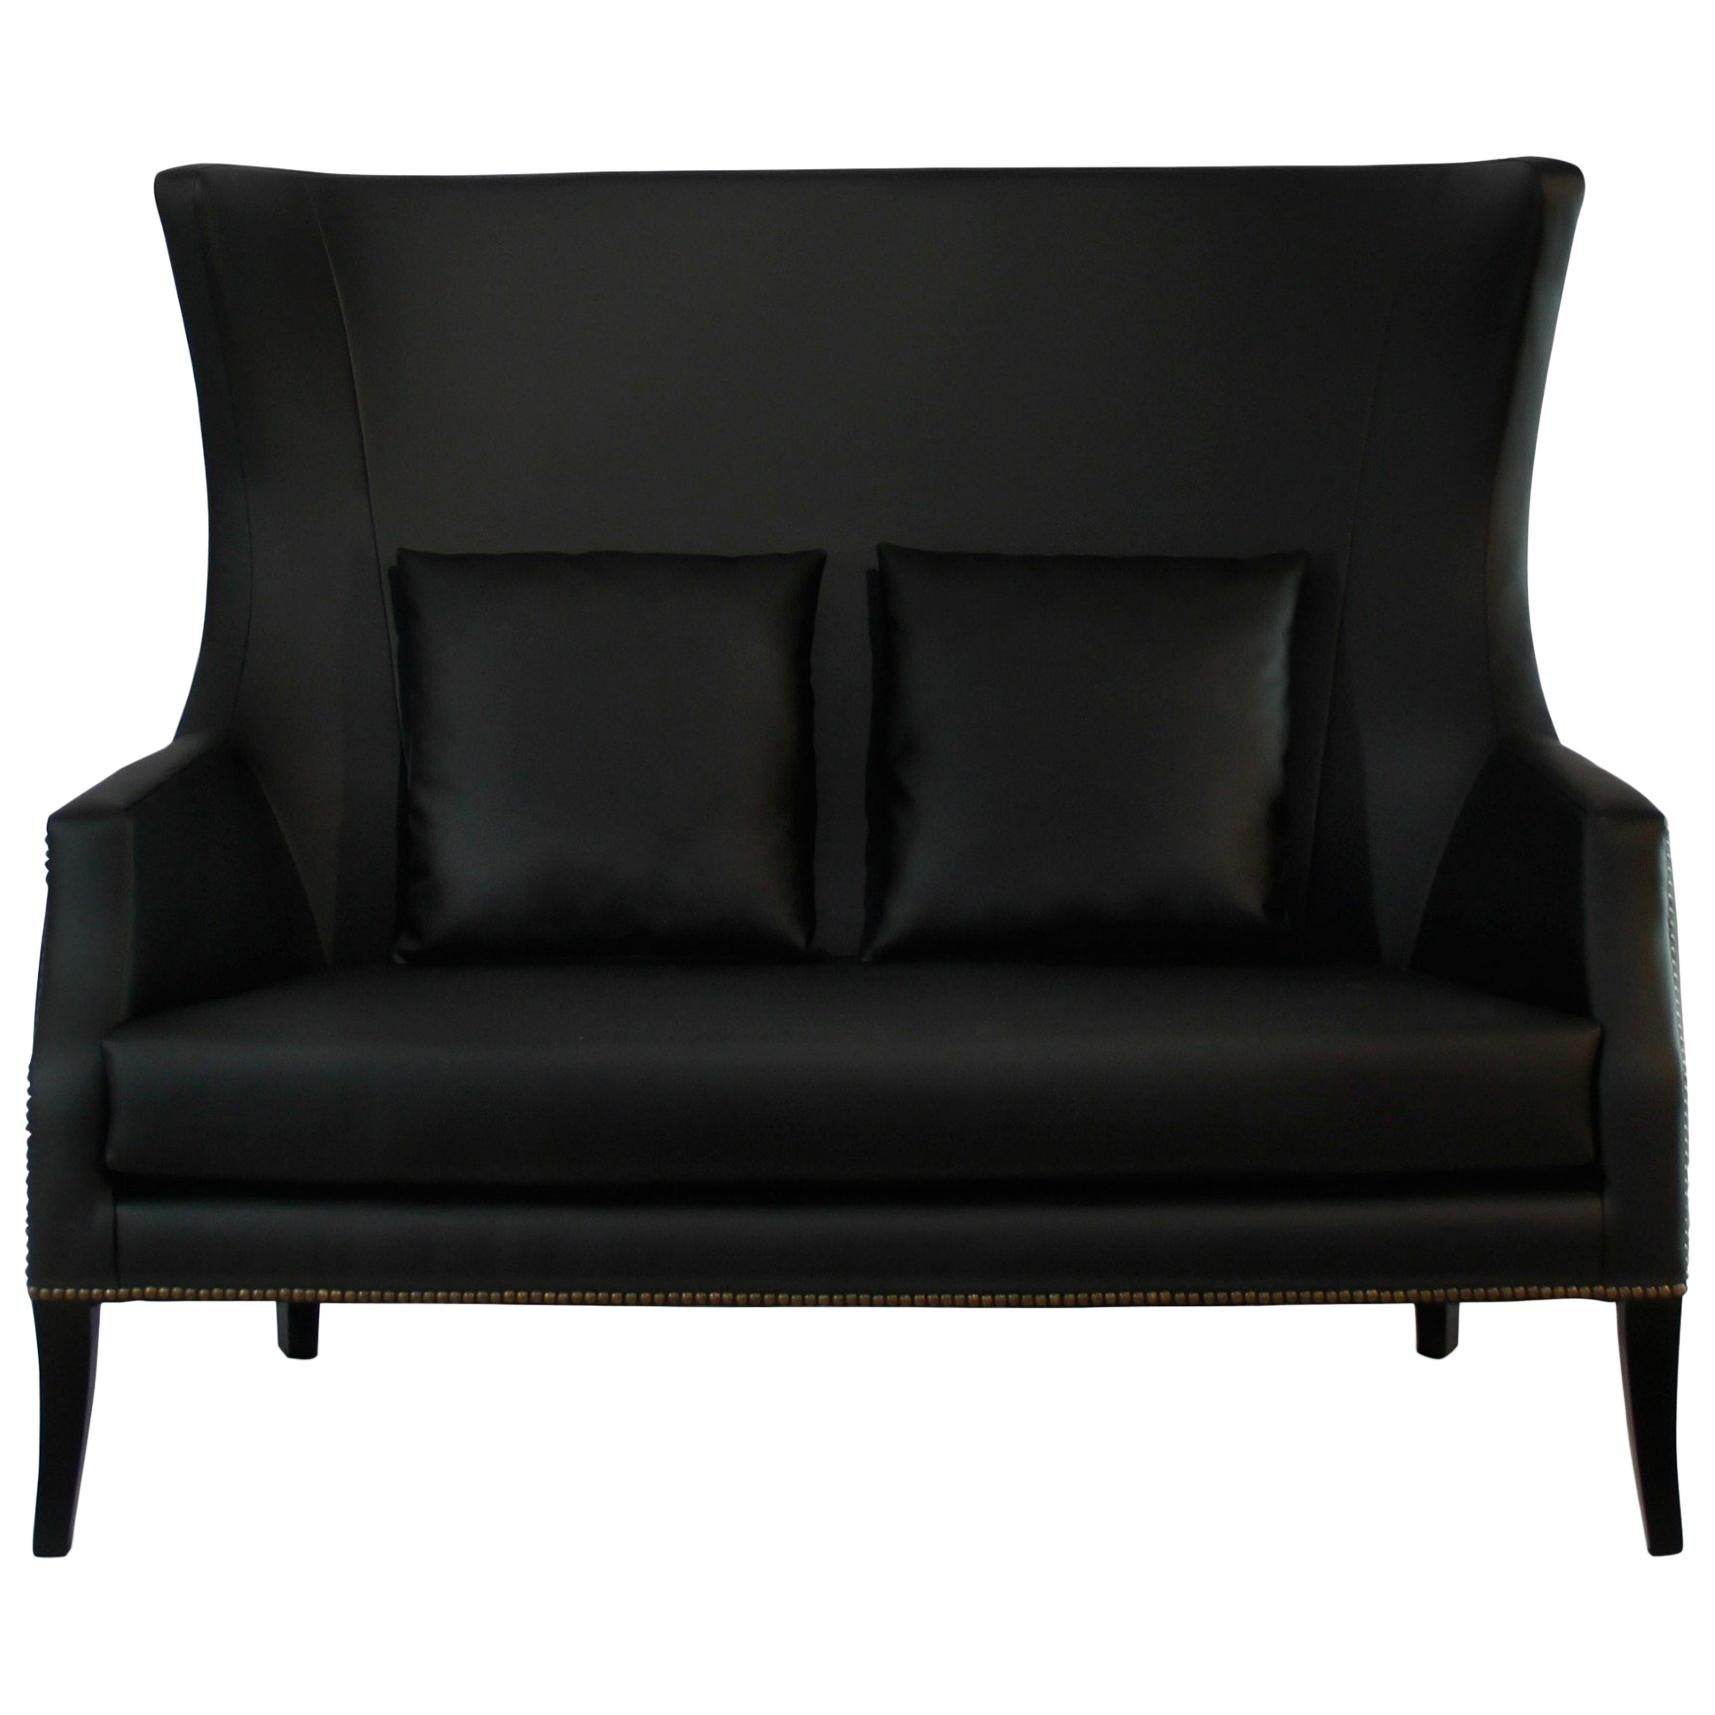 Dukono Sofa in Faux Leather with Metal Detail